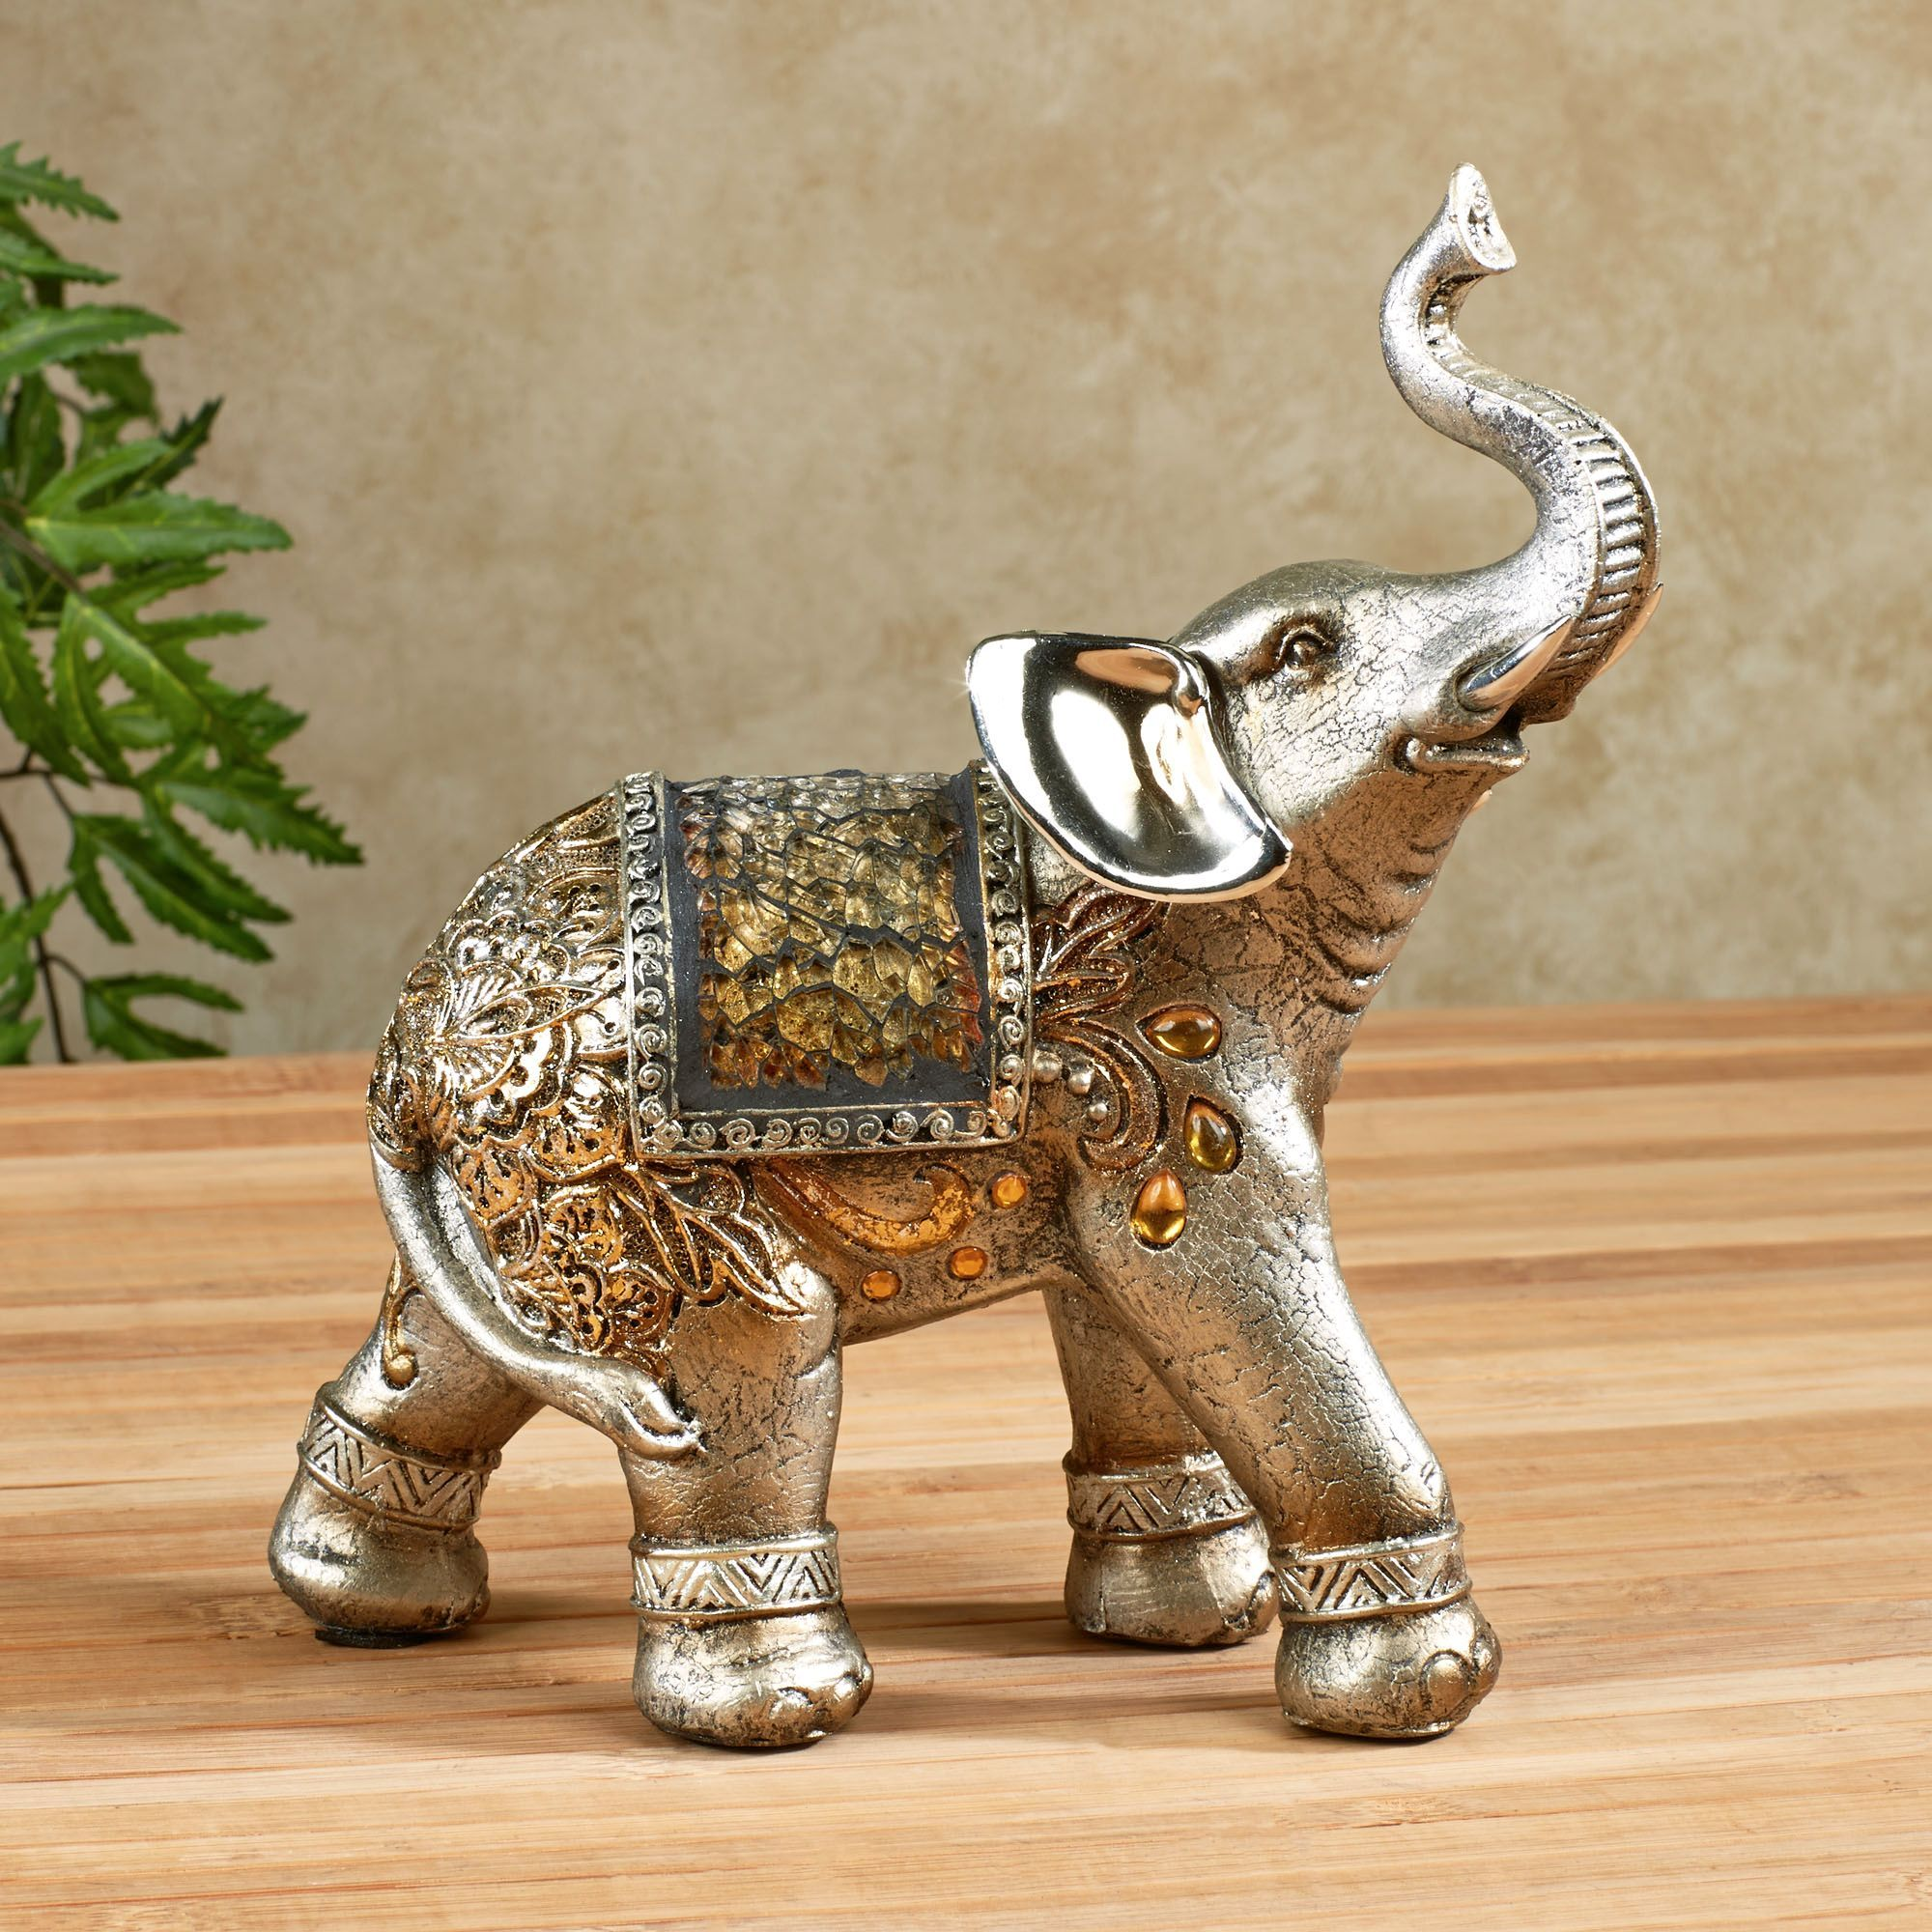 Elephant Decor Ideas: Bejeweled Mosaic Elephant Figurines For Home Decoration